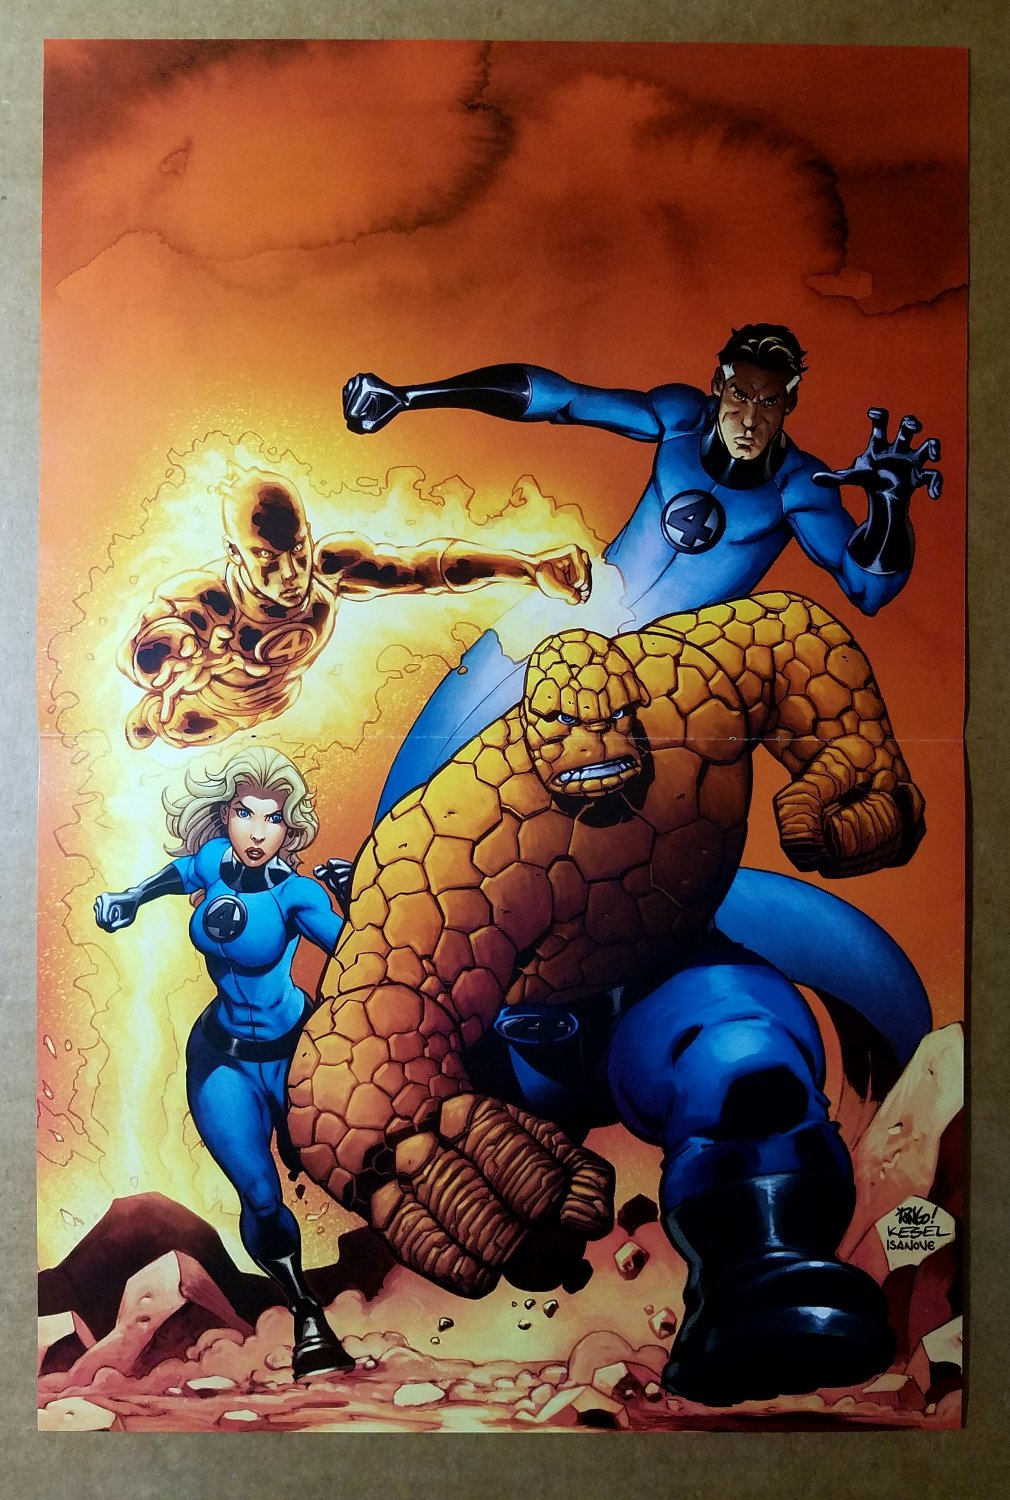 Fantastic Four Charge Marvel Comics Poster by Mike Wieringo